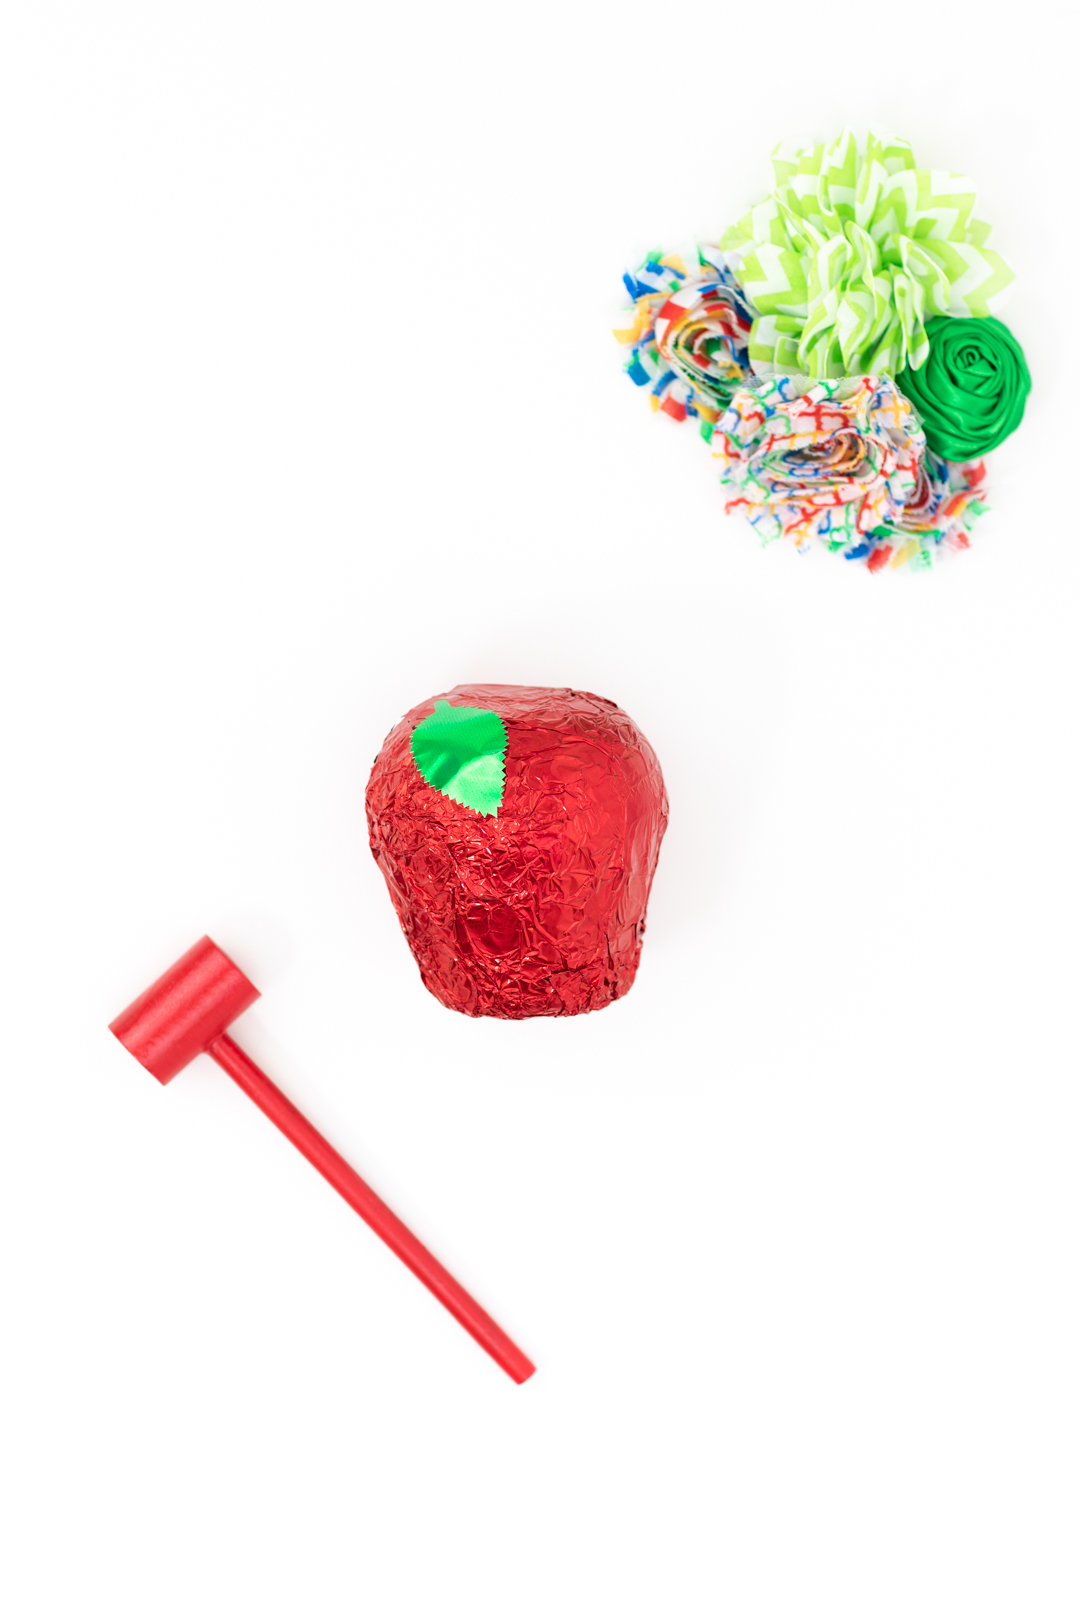 foil wrapped chocolate apple near a mini mallet to smash it with to reveal treats inside